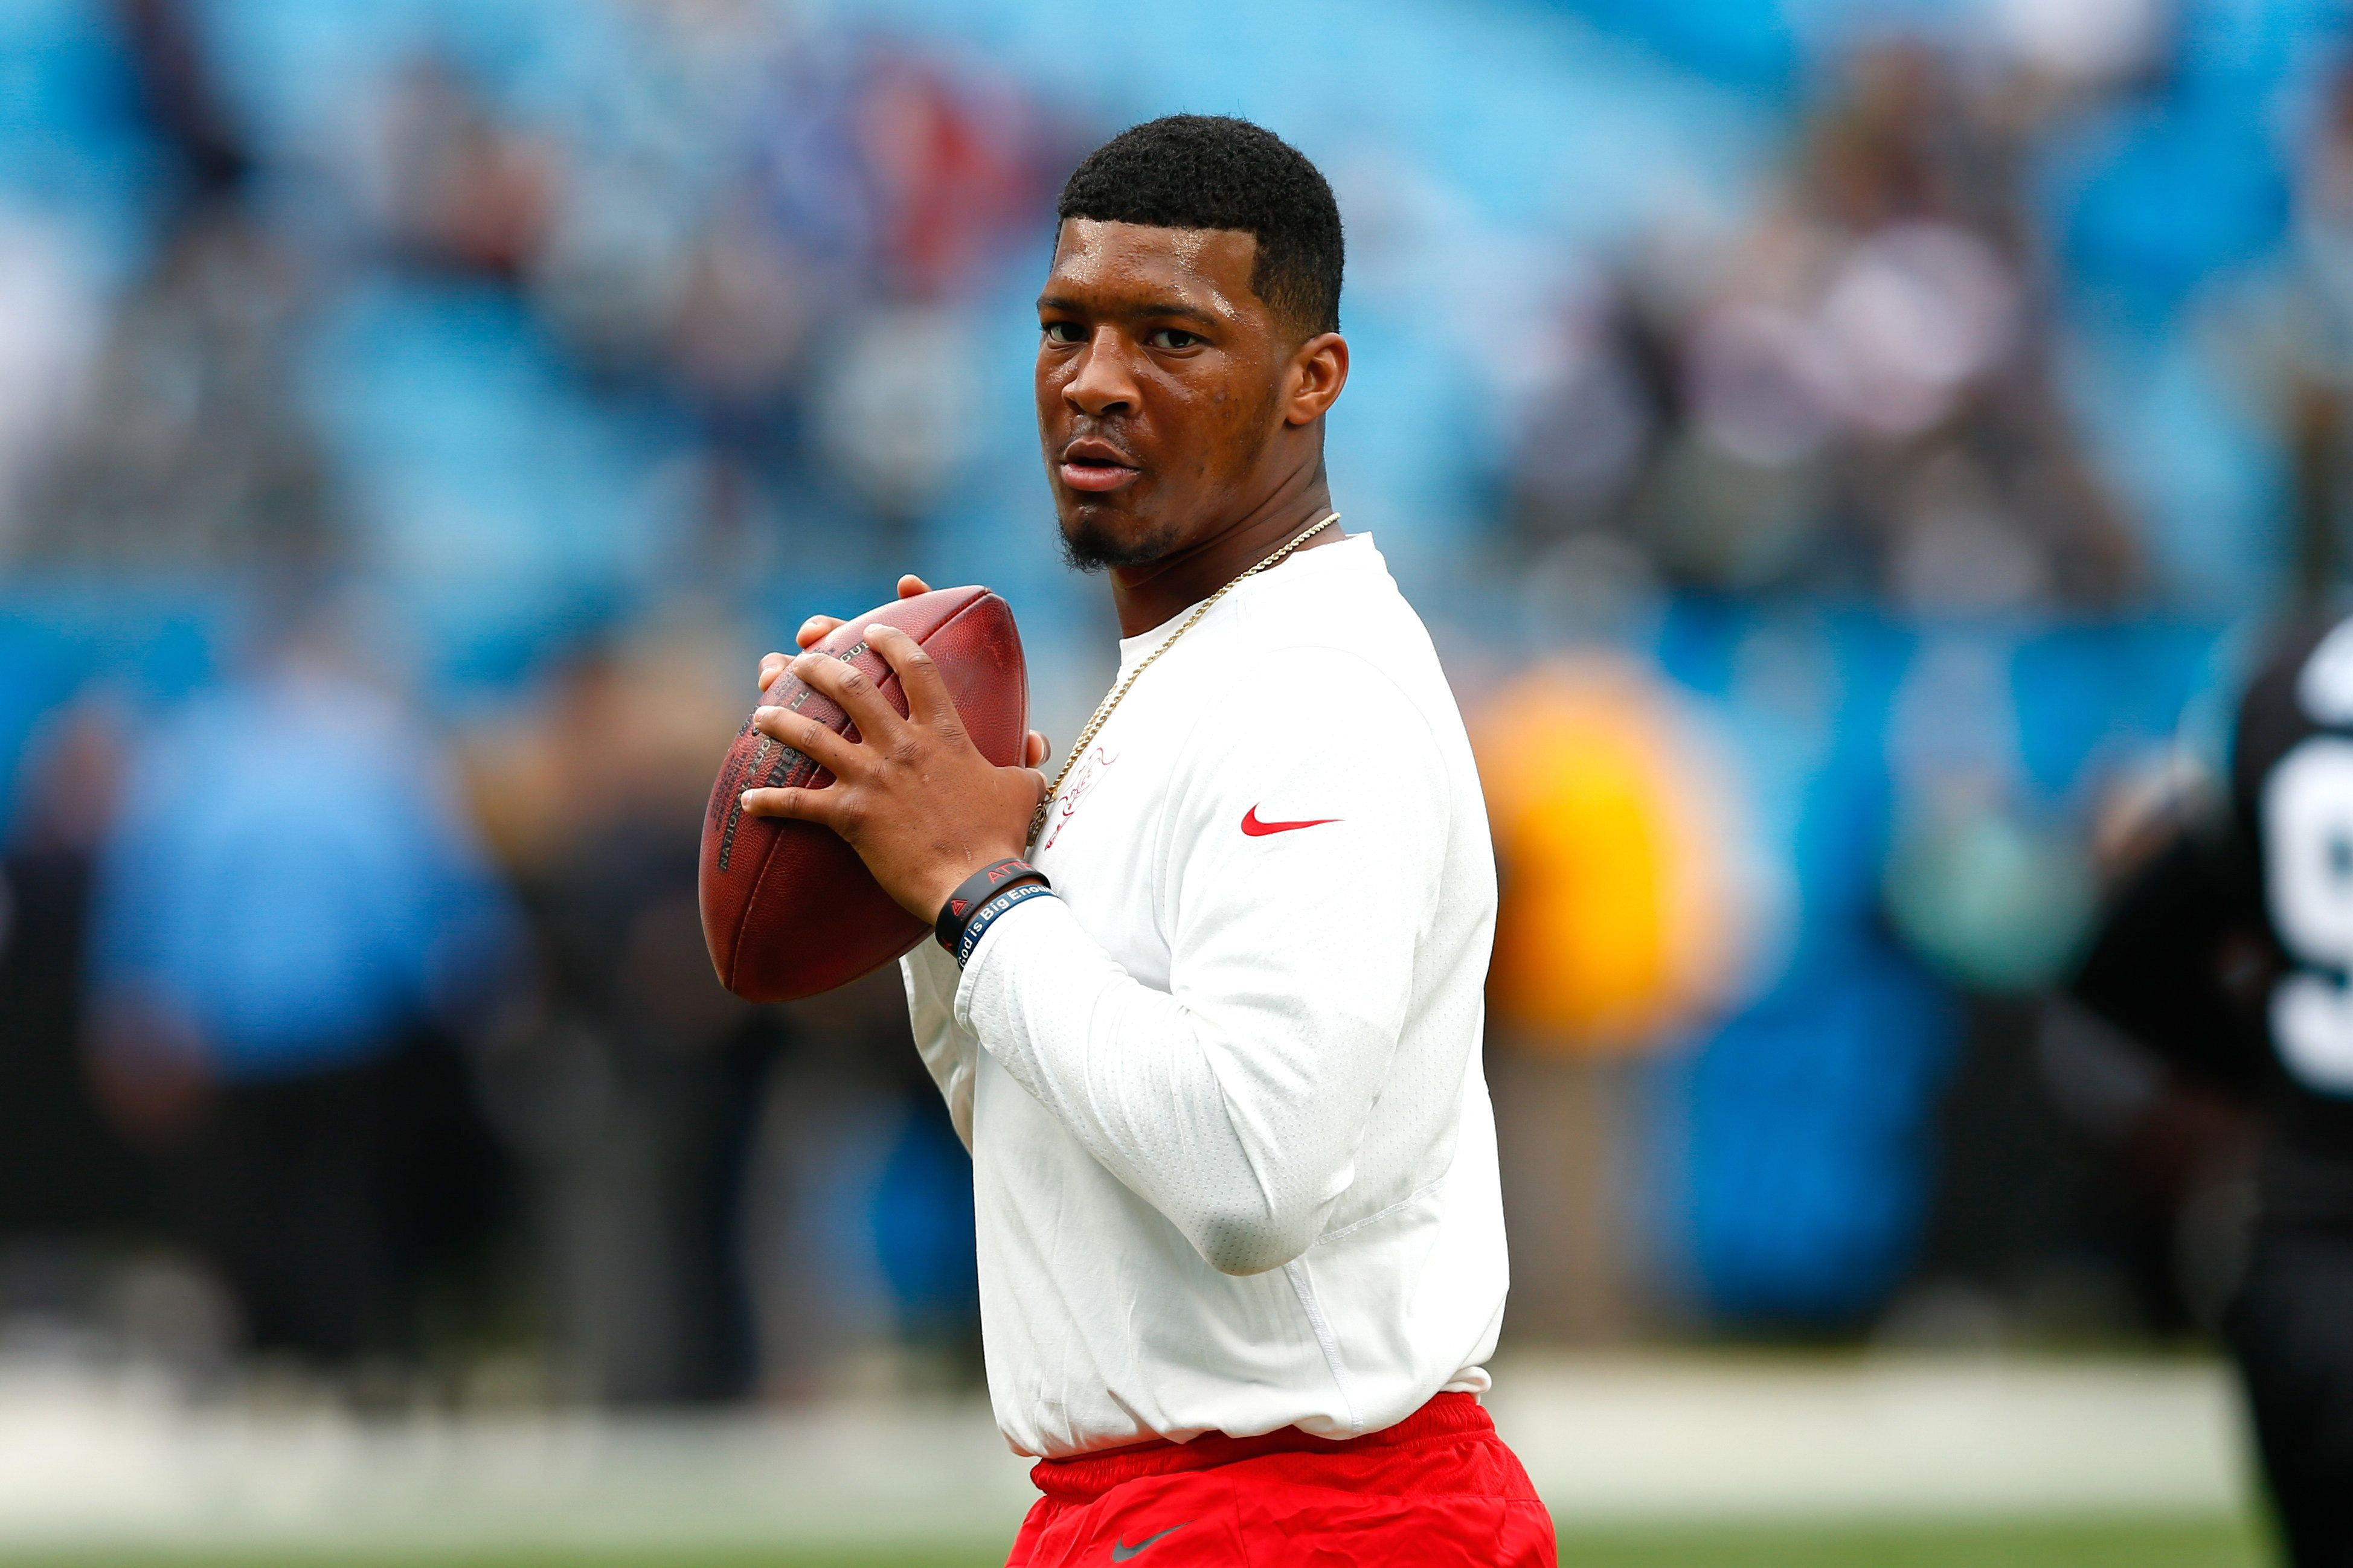 Tampa Bay Buccaneers quarterback Jameis Winston was suspended by the NFL over the alleged groping incident. He's now facing a